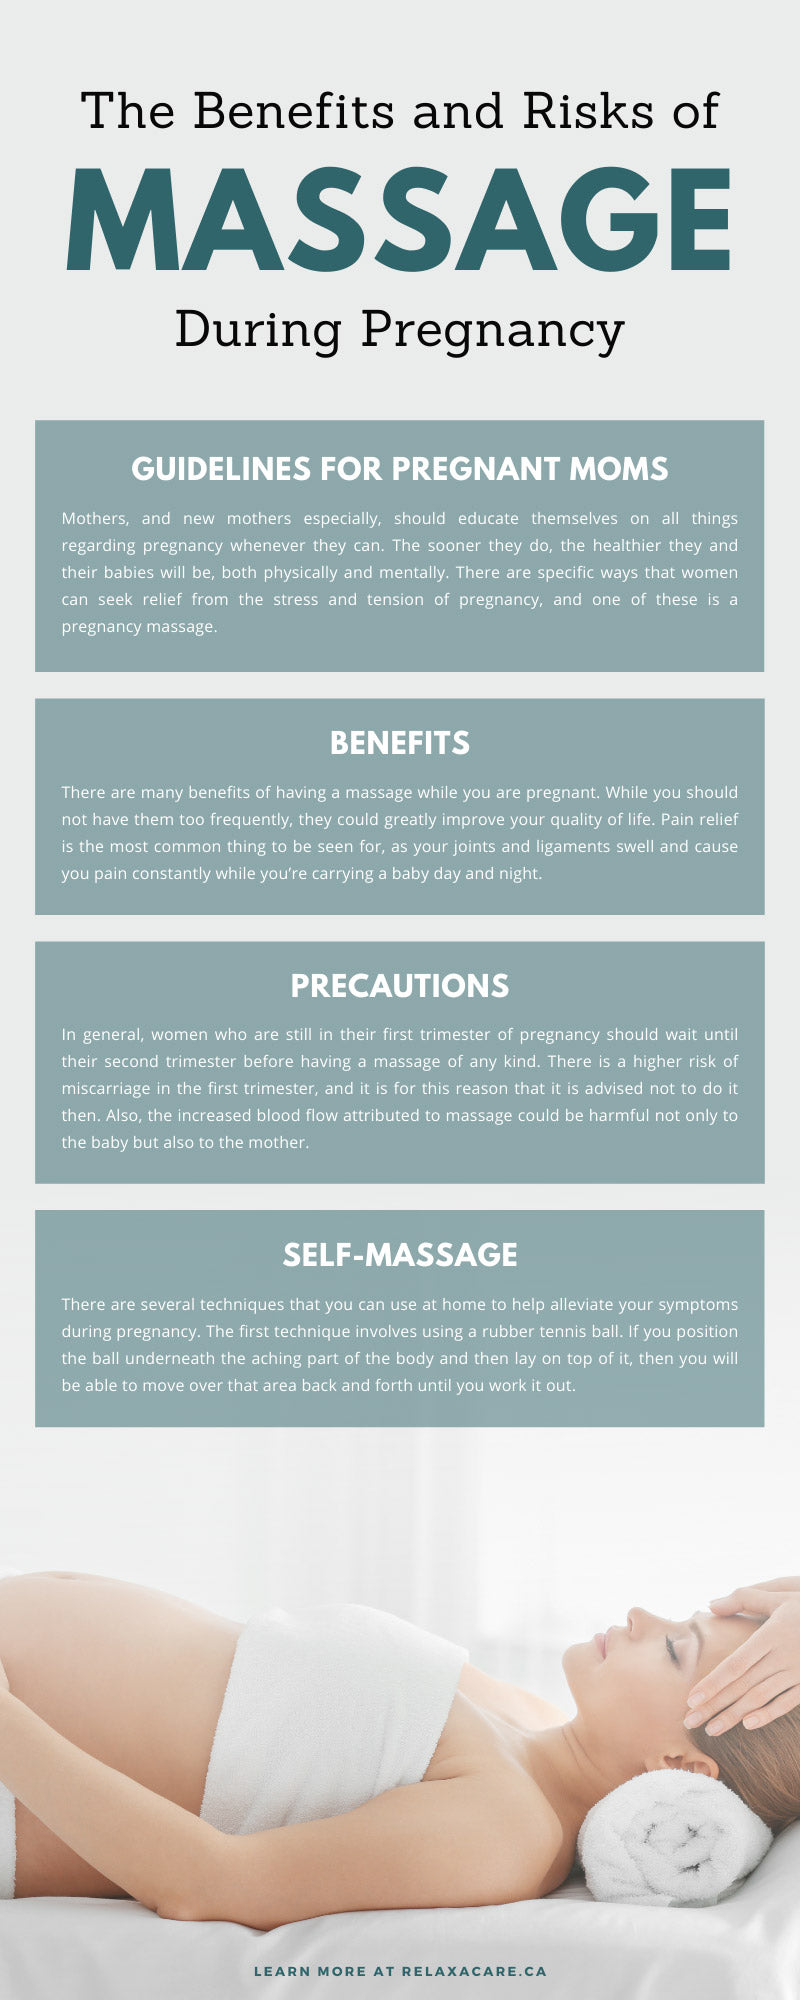 The Benefits and Risks of Massage During Pregnancy